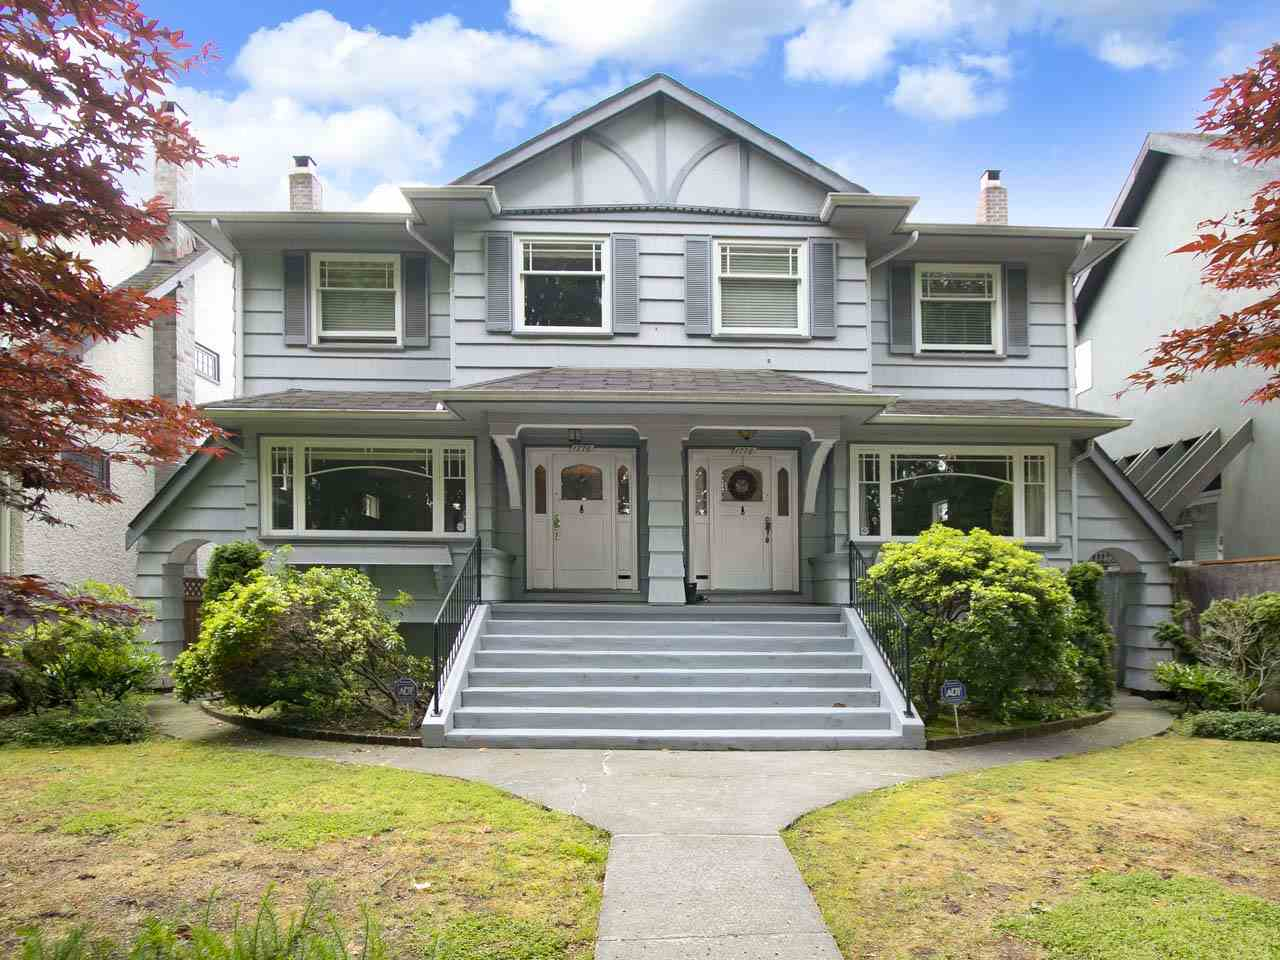 Unique opportunity to own a 50? lot with RT-5 zoning in Lower Shaughnessy.  This side by side duplex has two dwelling units.  Both units are over 2,200 sf and have large principle rooms on the main floor, high ceilings and plenty of natural light.  Each side has three bedrooms up and one bathroom.  The lower levels are fully finished with more bedrooms, bathroom and laundry.  One side has been renovated and the other side is ripe for renovation.   A great holding property with income and the ability to build a new duplex.